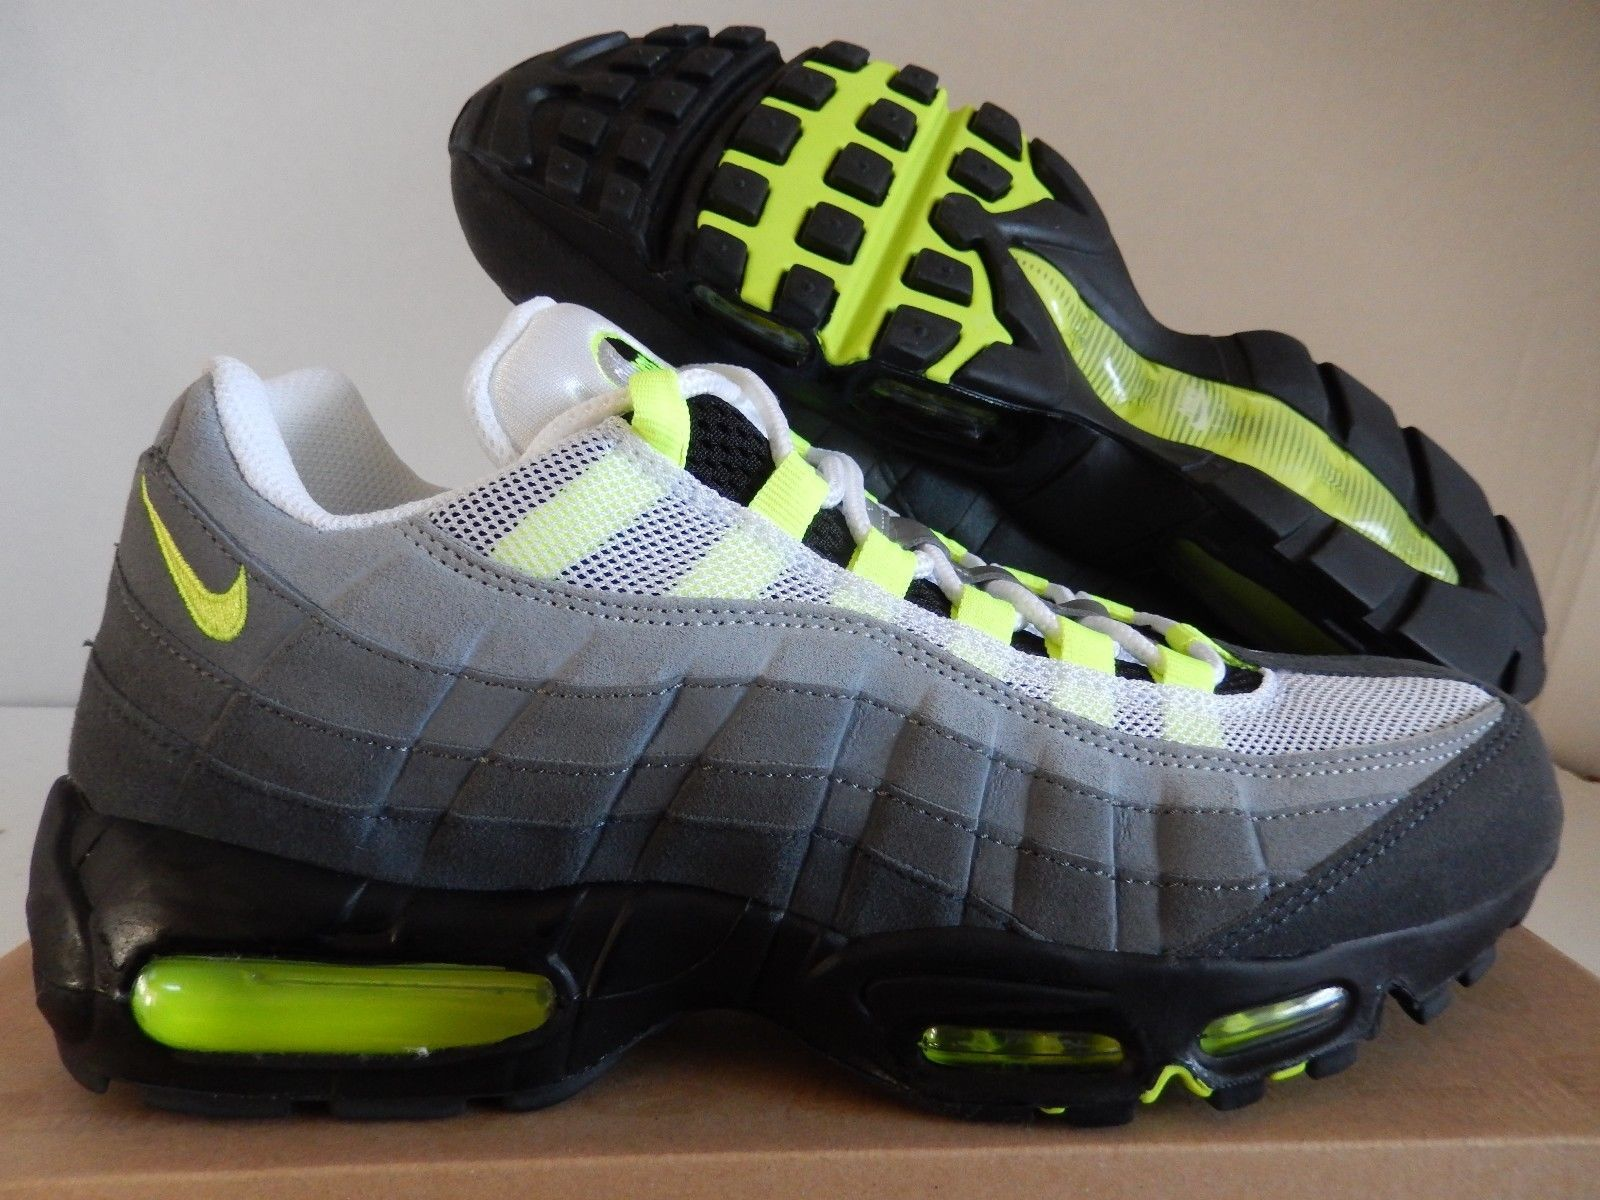 ac2dd6e4ae NIKE AIR MAX 95 OG WHITE-NEON YELLOW-BLACK-ANTHRACITE SZ 10 RARE!  [554970-174]